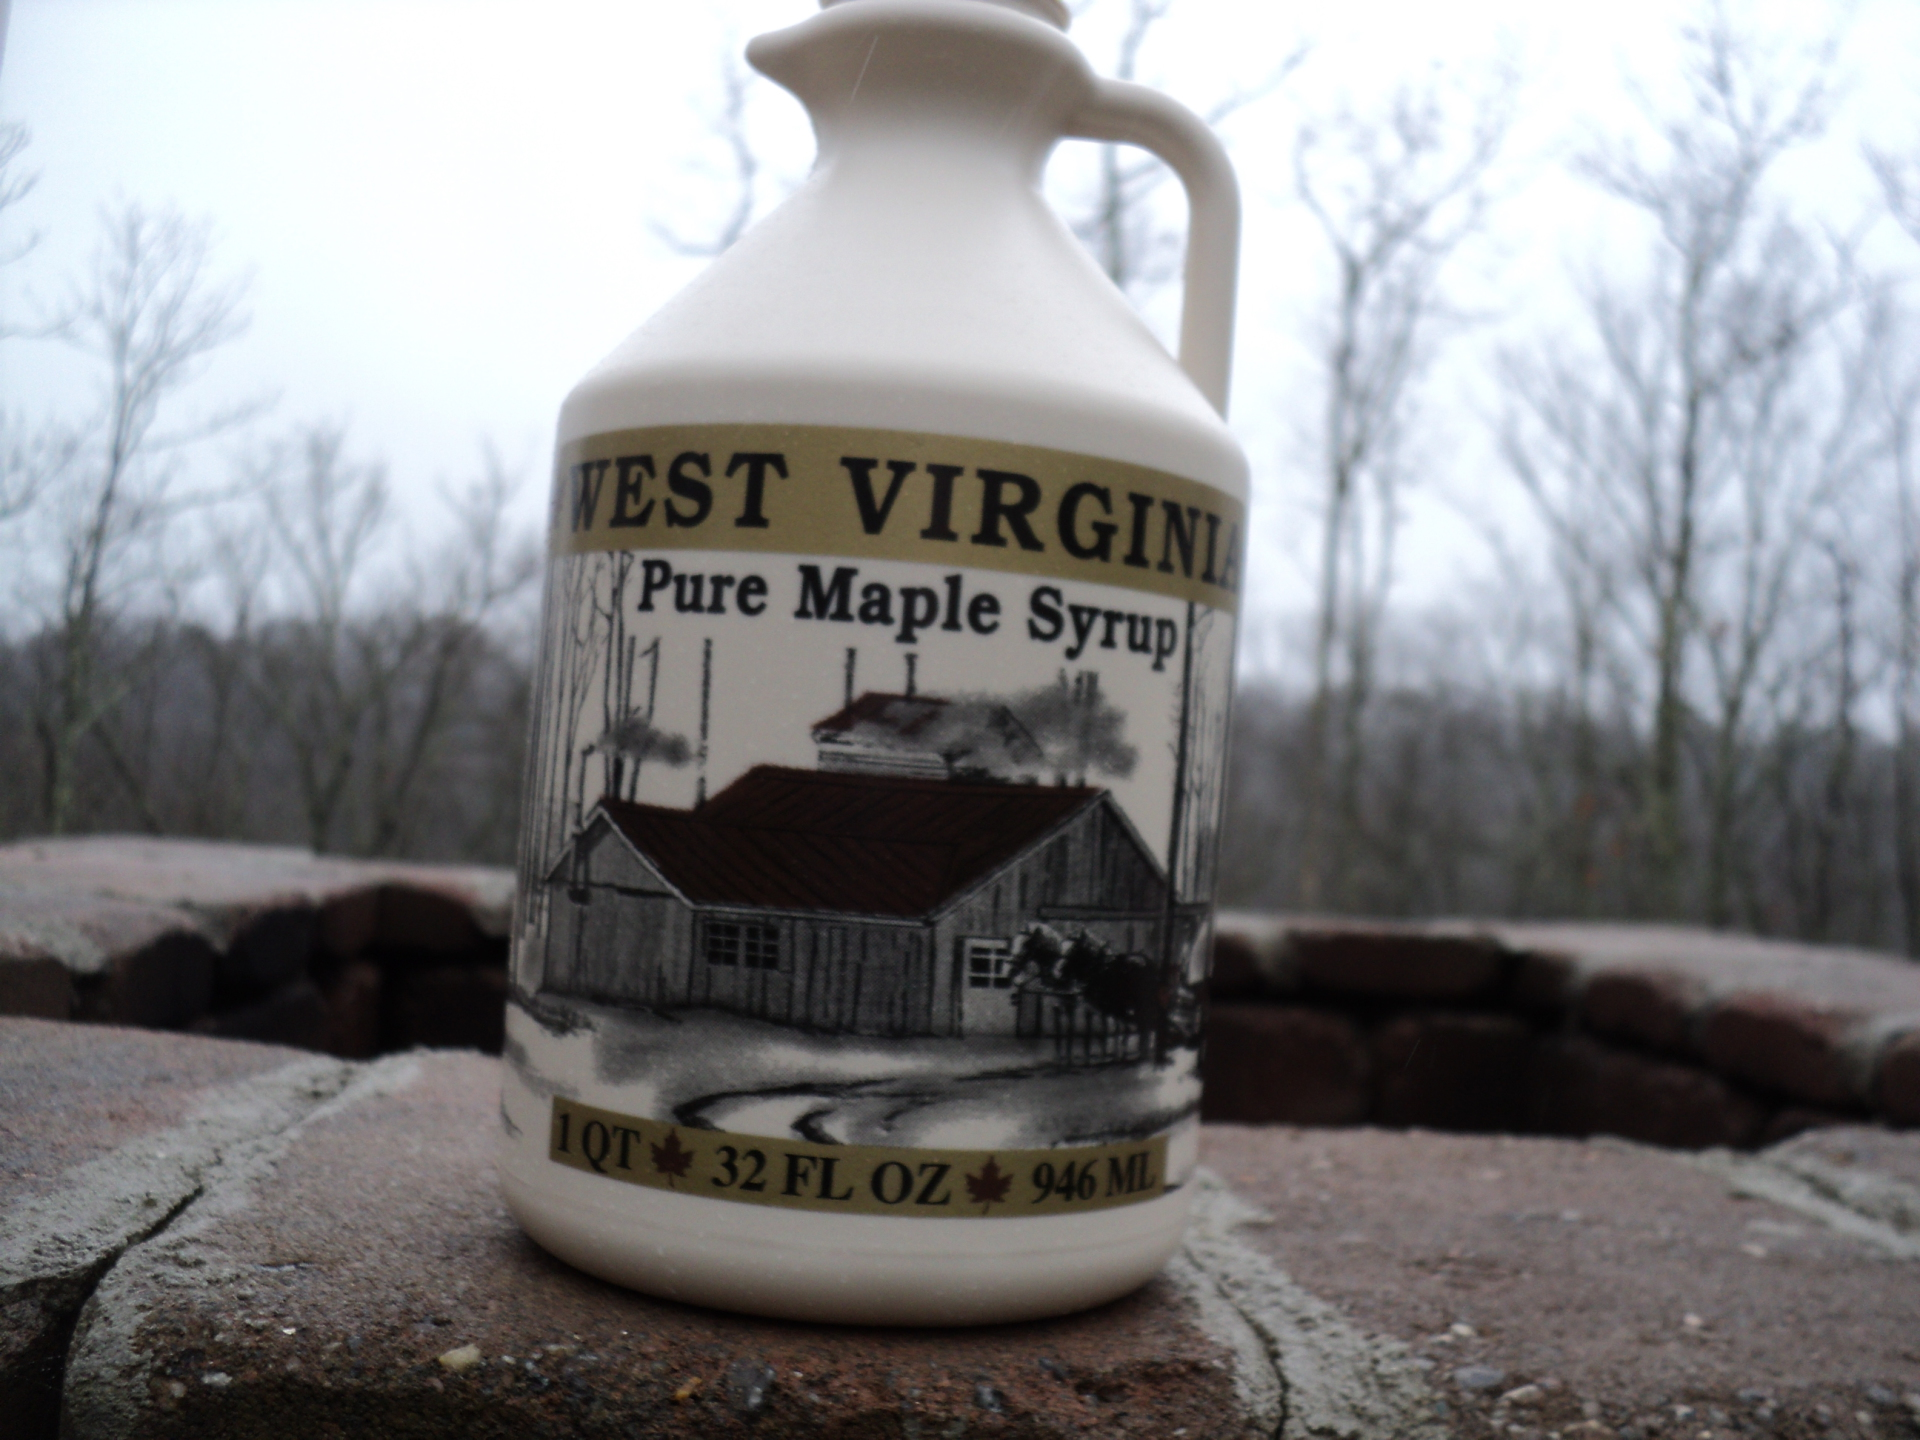 1 Quart Pure WV Maple Syrup